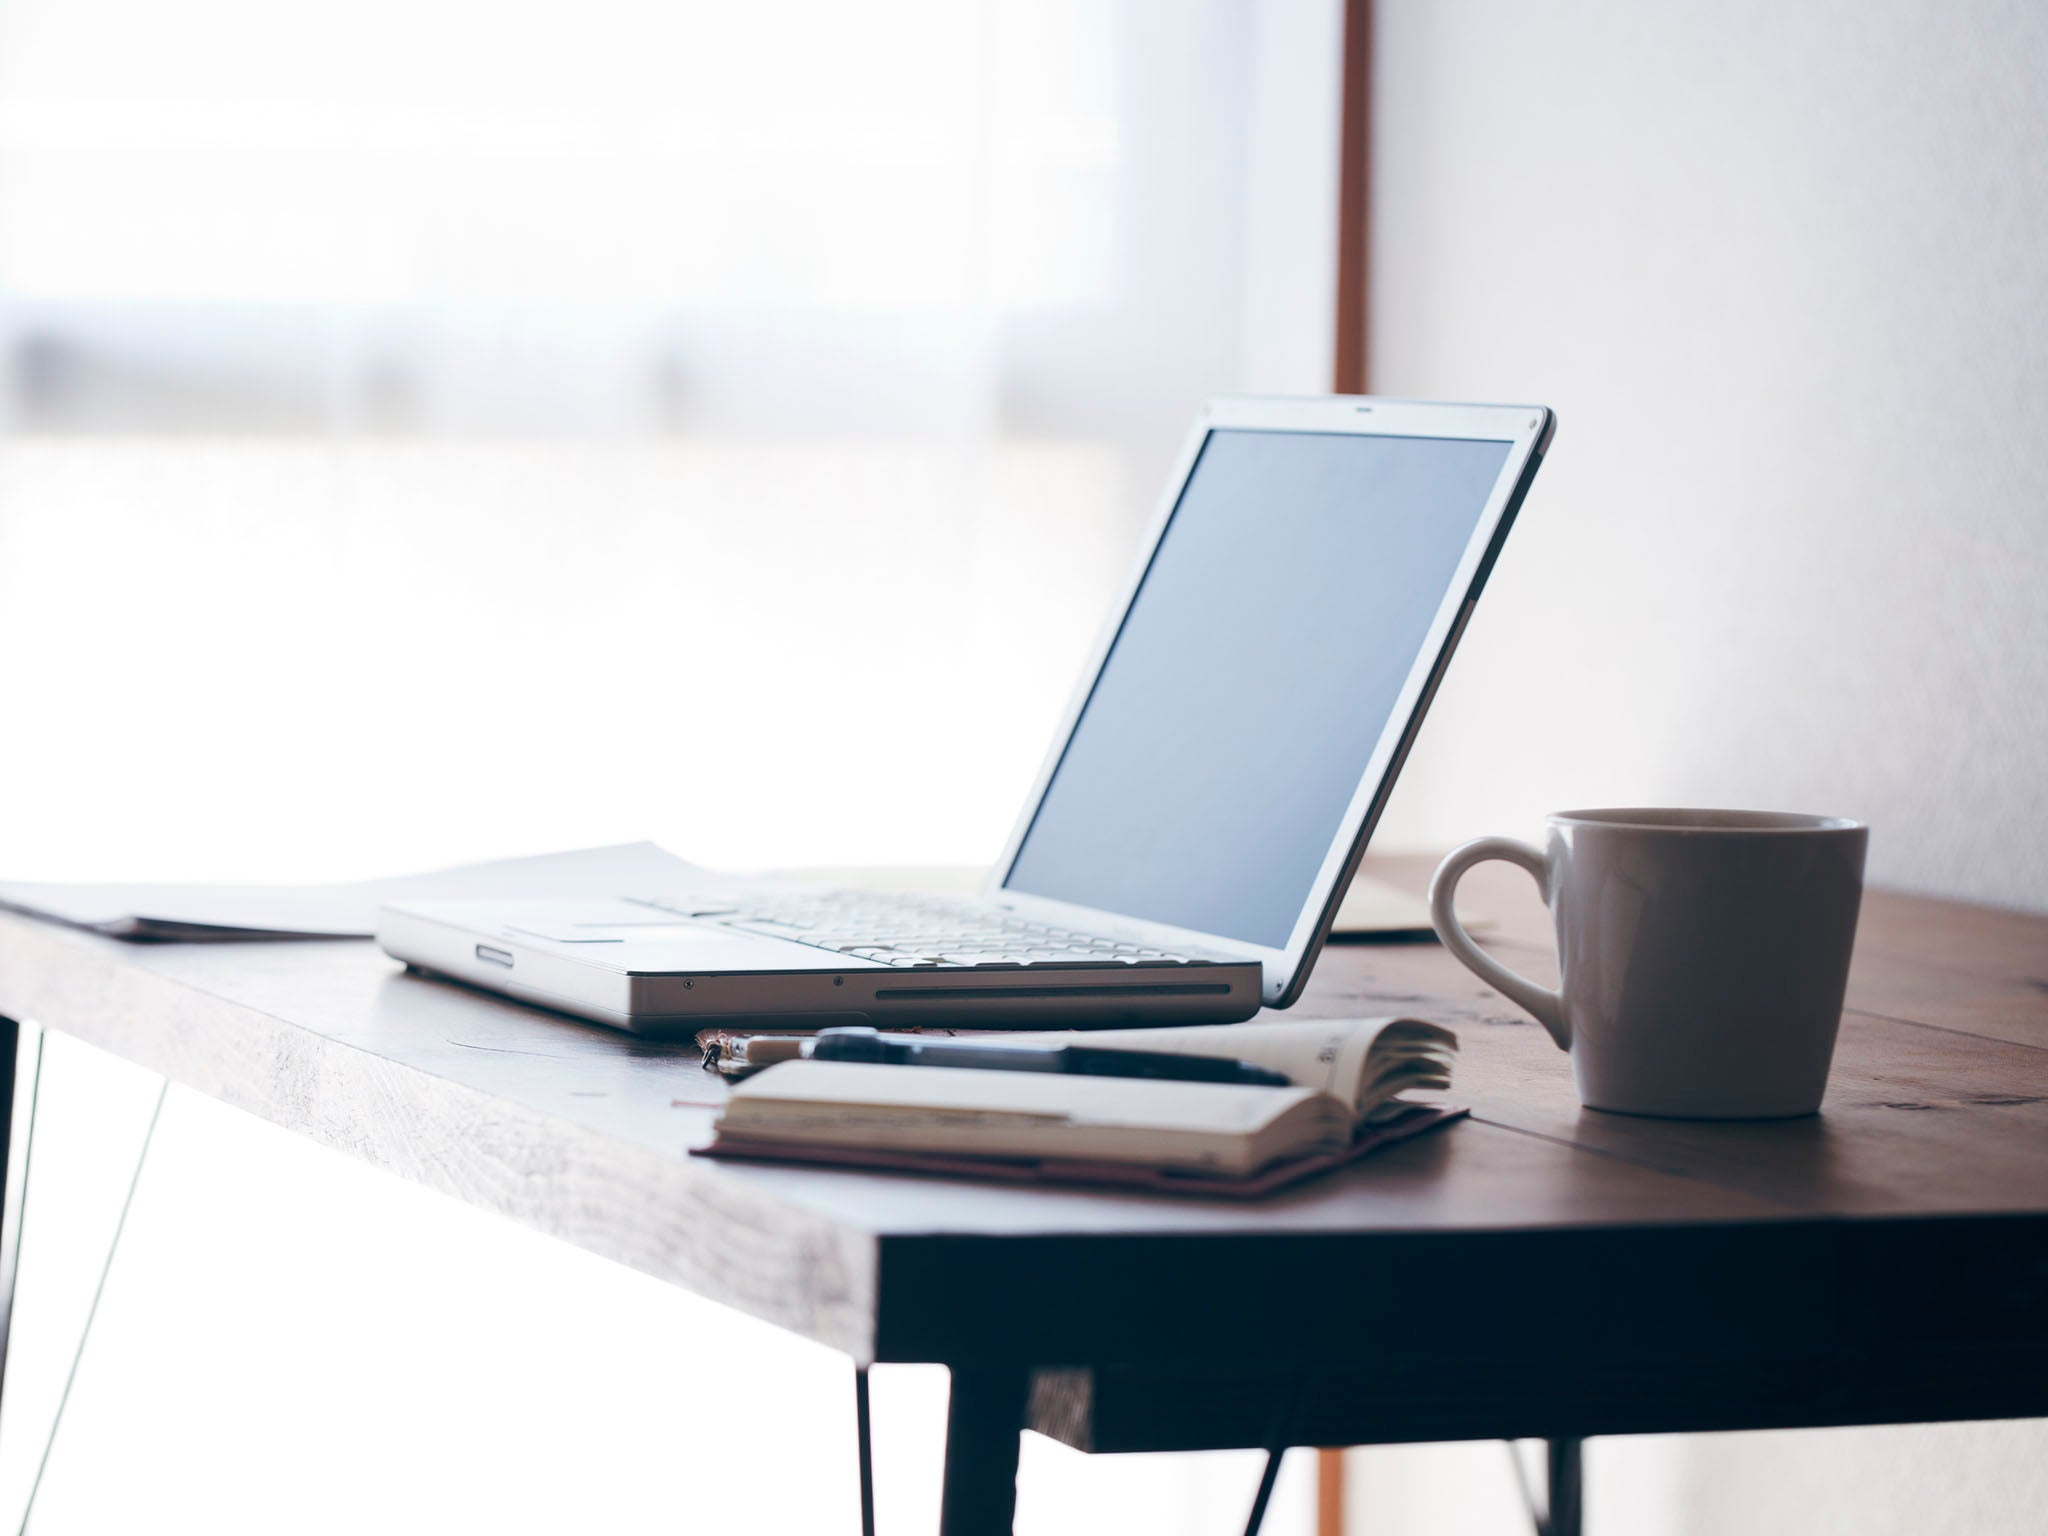 Increasing number of people favouring flexible work, study says